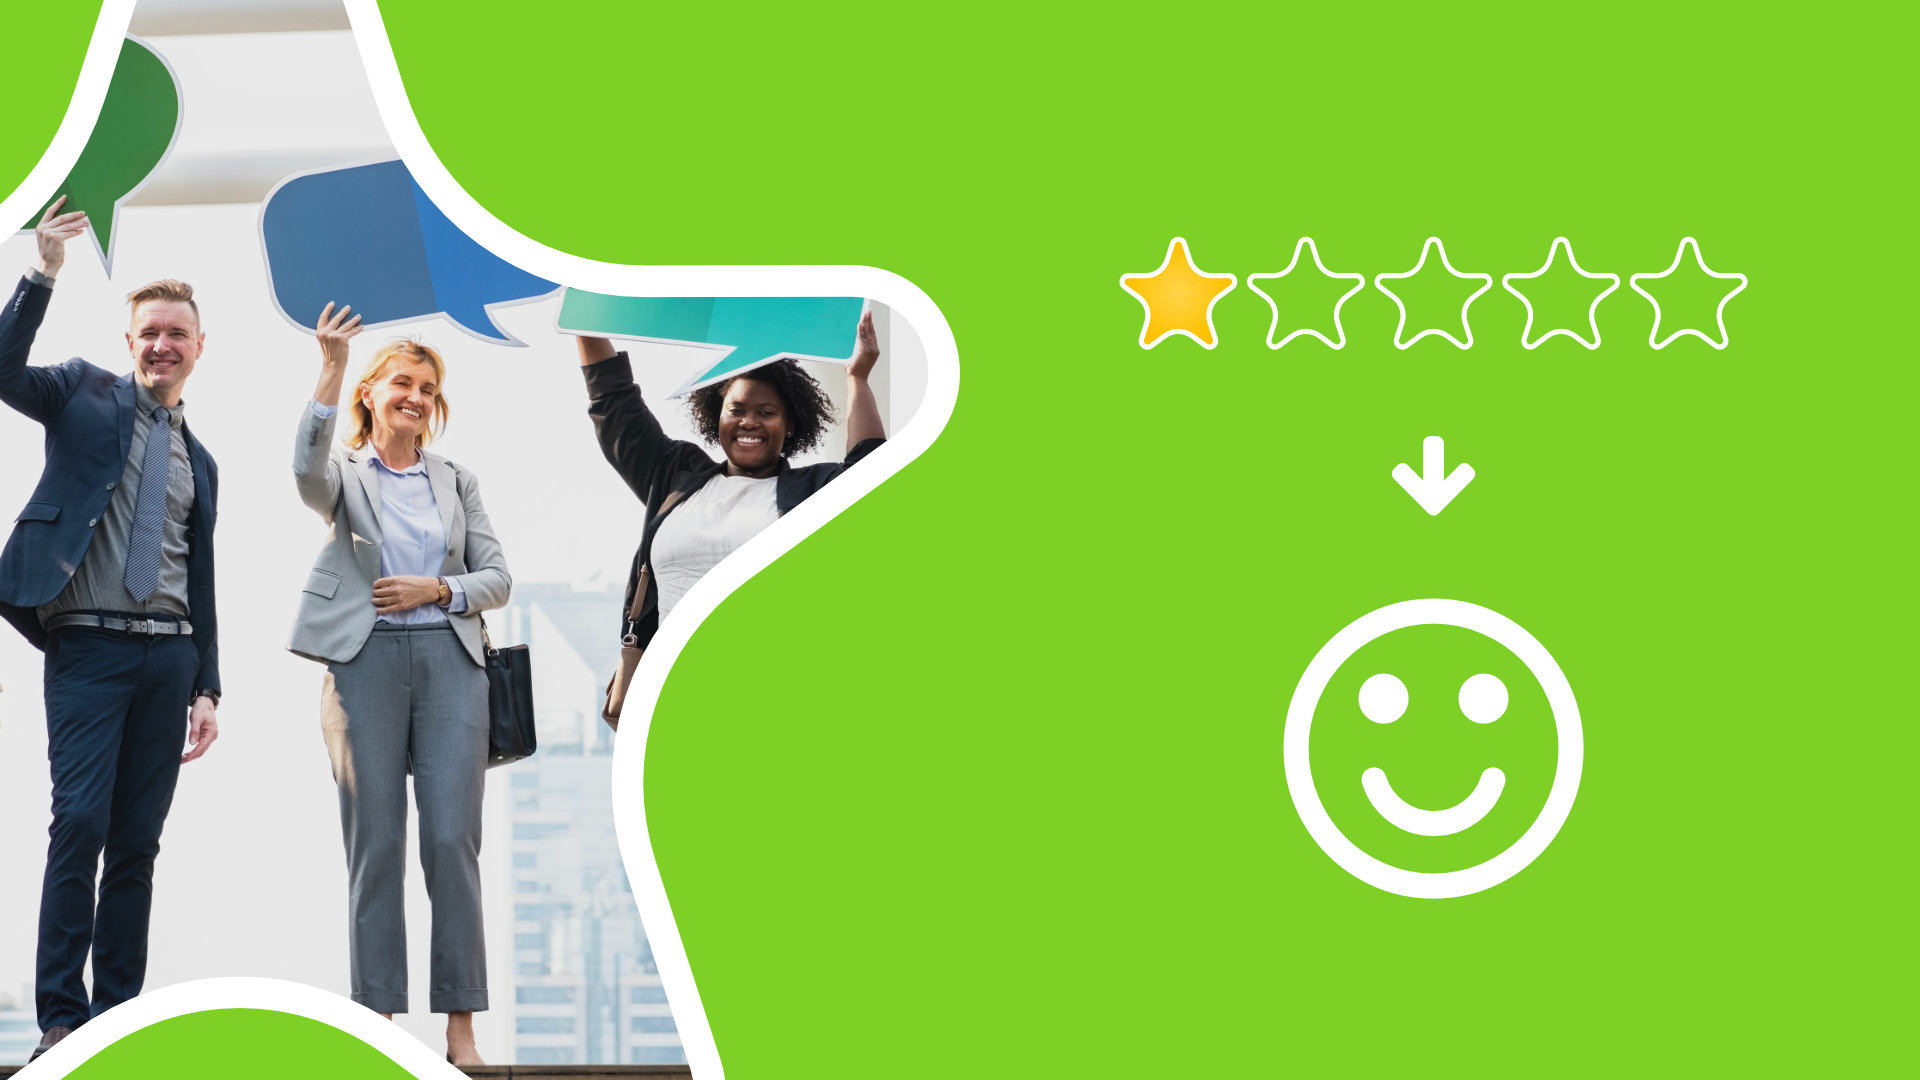 4 Ways to Turn Negative Reviews into Positive Marketing